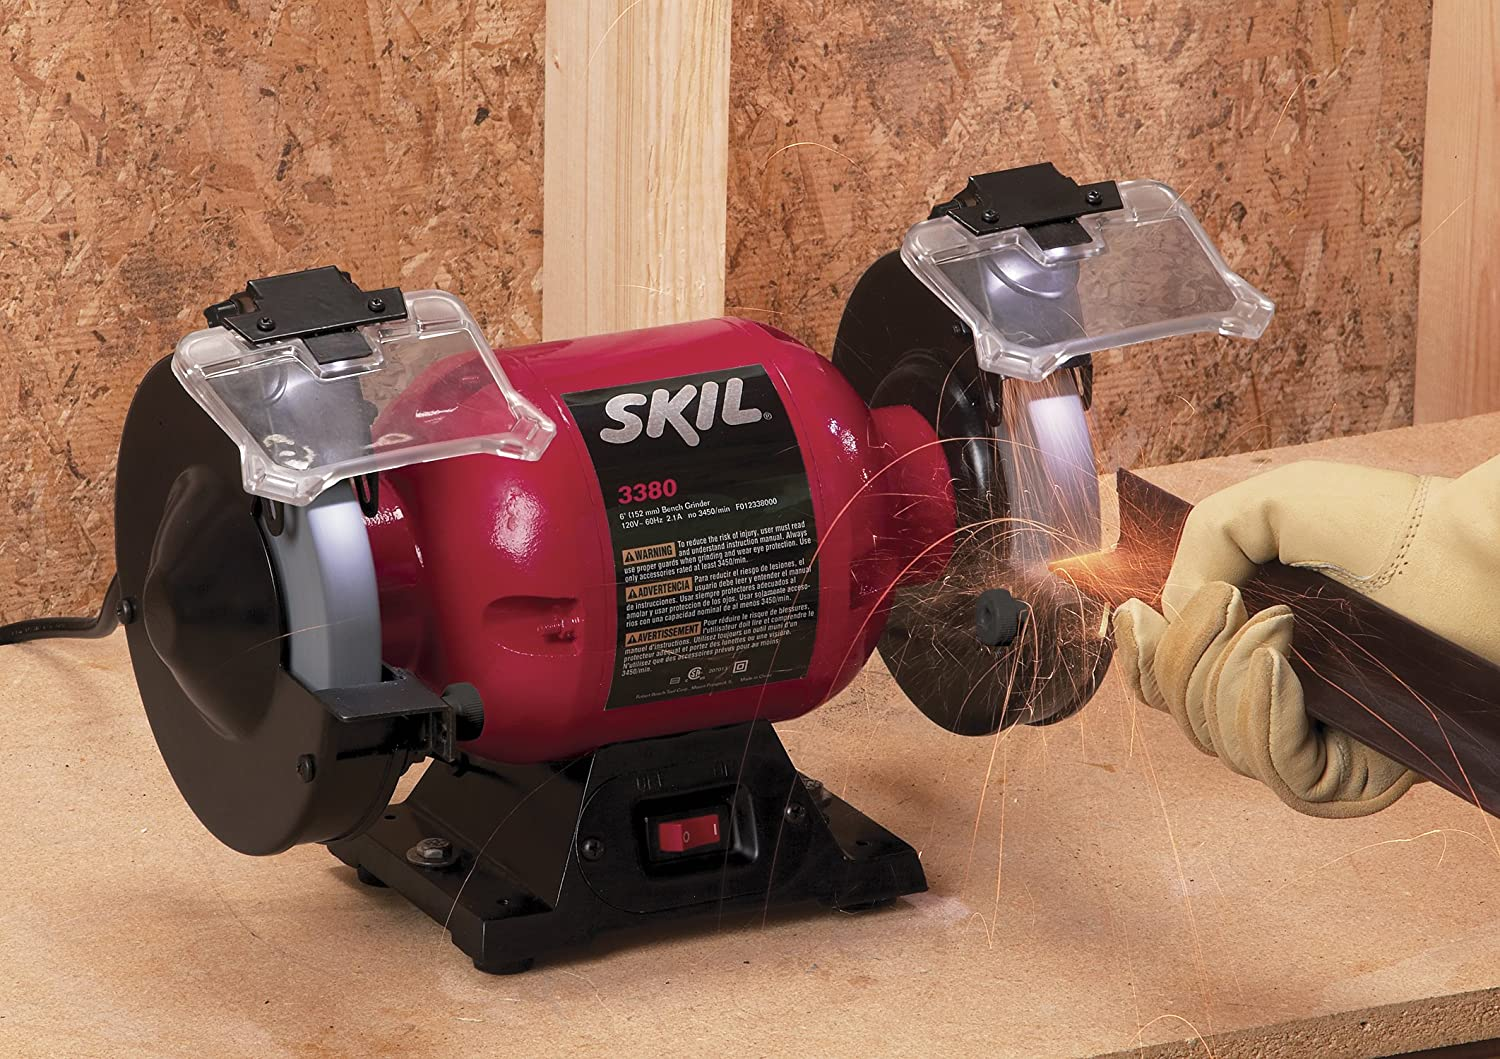 Miraculous Skil 3380 01 6 Inch Bench Grinder Ncnpc Chair Design For Home Ncnpcorg